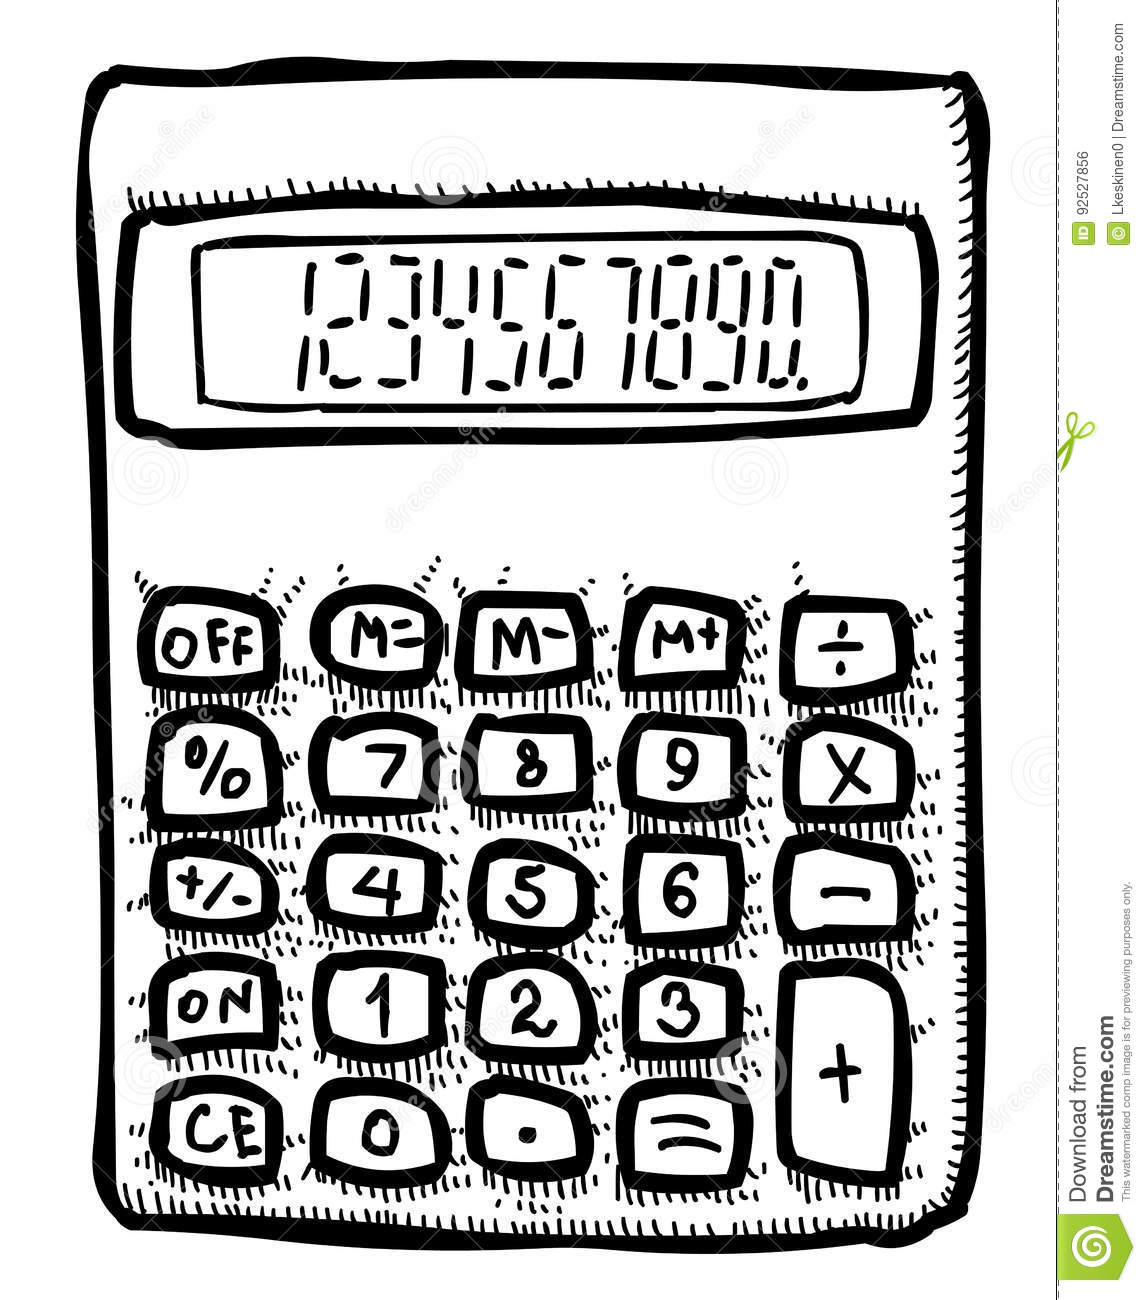 https://thumbs.dreamstime.com/z/cartoon-image-calculator-icon-mathematics-symbol-artistic-freehand-picture-92527856.jpg Math Calculator Cartoon